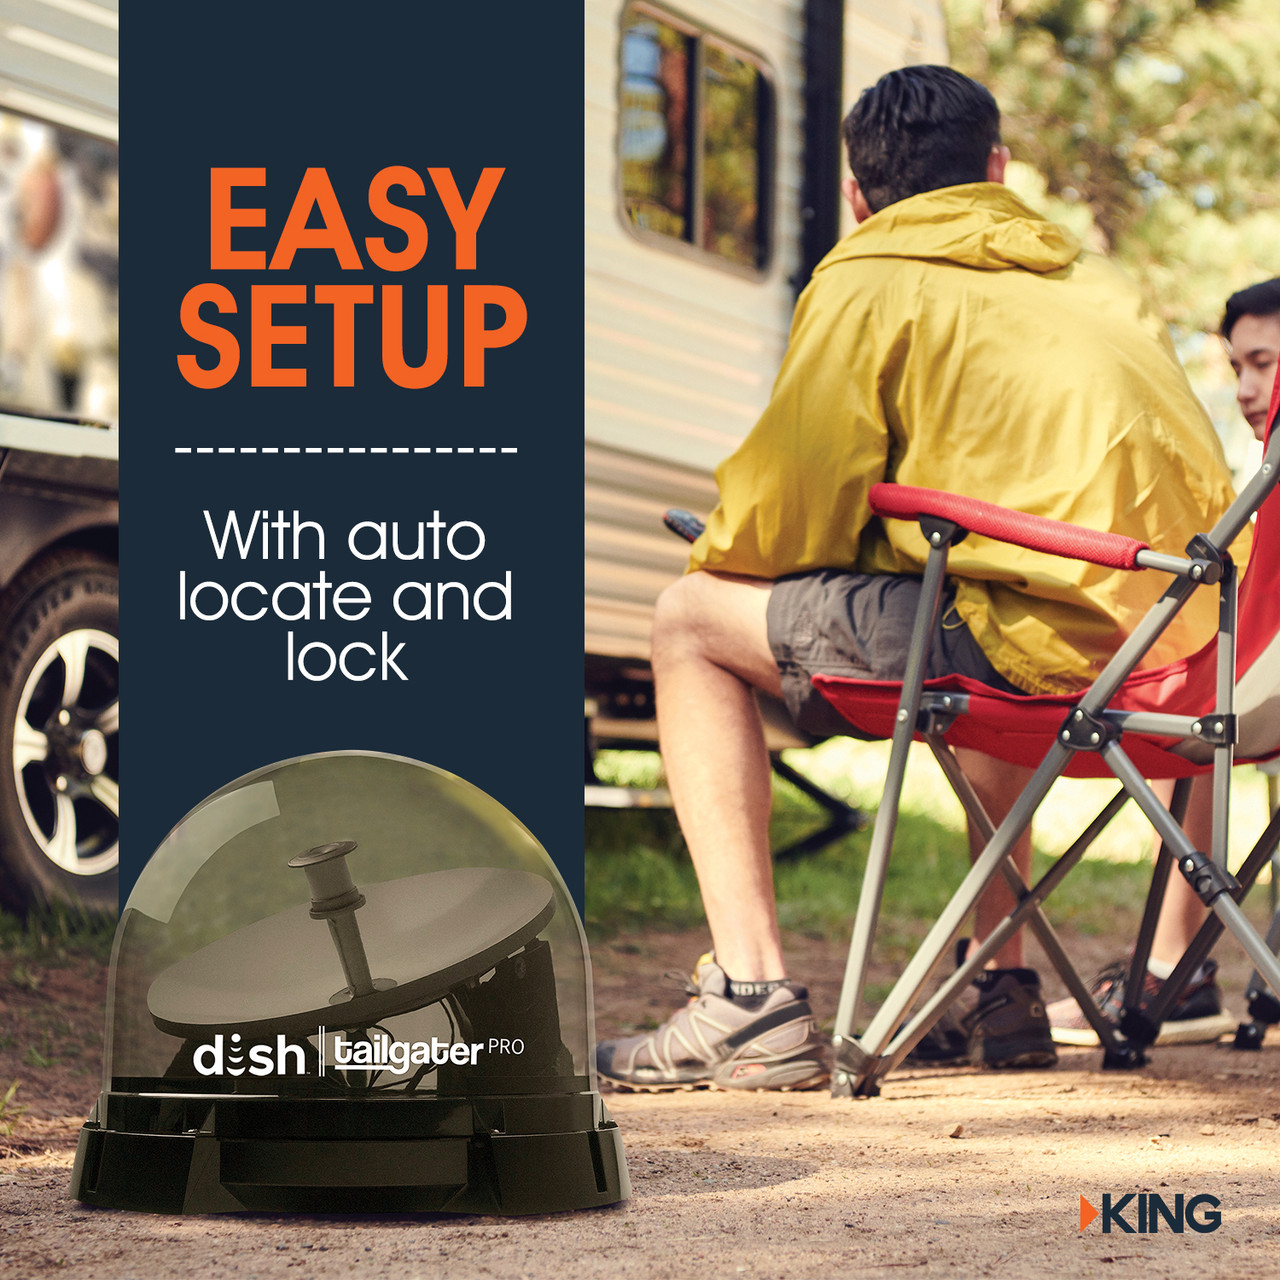 The KING DISH Tailgater Pro is designed to be set up in moments. Simply point it at the sky, connect it to your satellite receiver and follow the onscreen prompts on your TV. With the auto signal locking technology, this portable satellite dish for RVs and camping is super easy to set up anywhere.